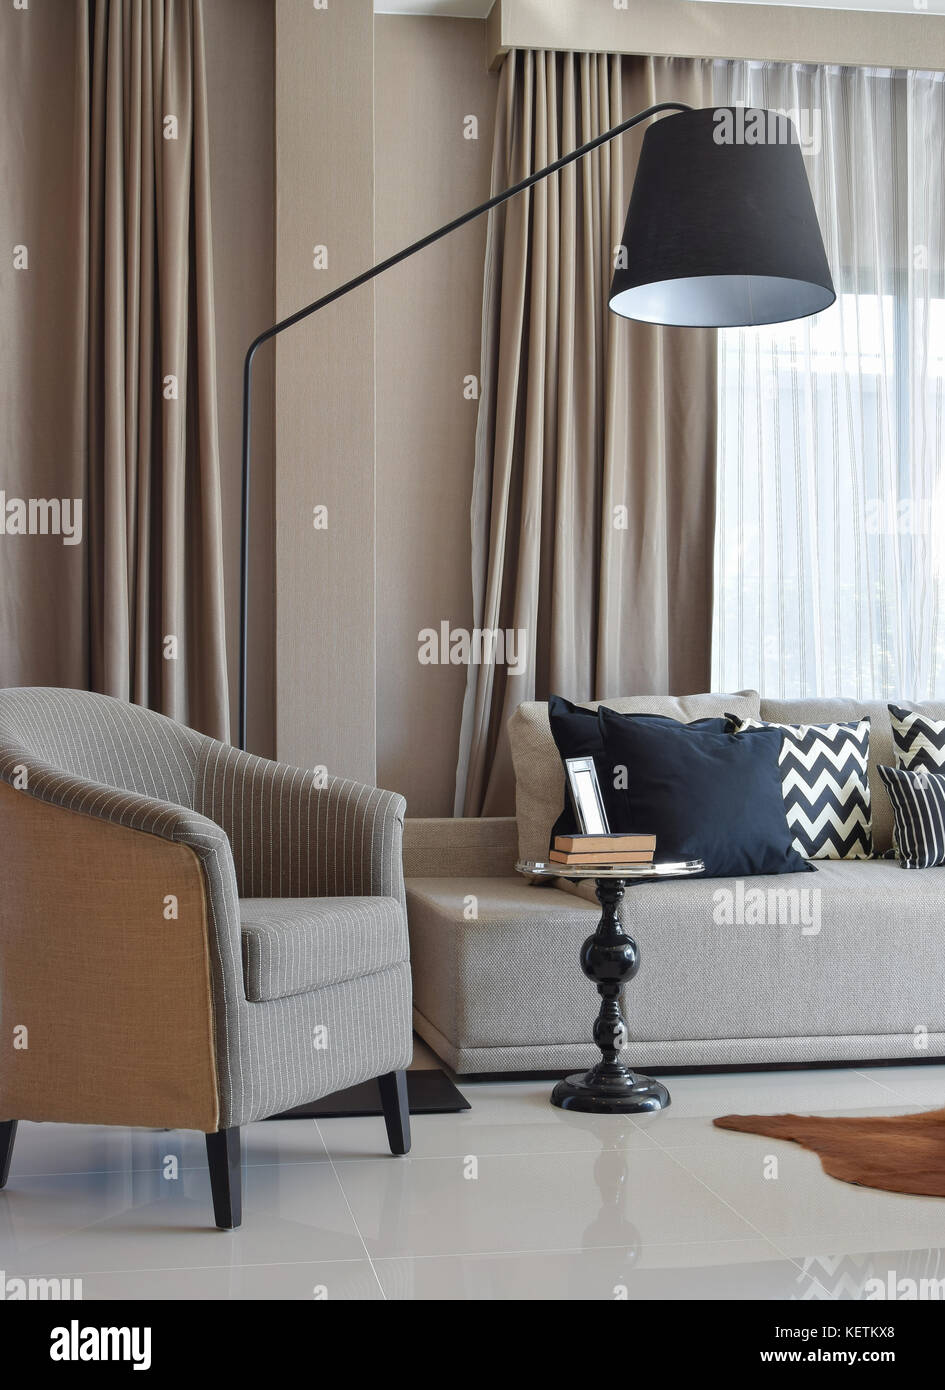 stylish living room design with grey striped pillows on comfortable